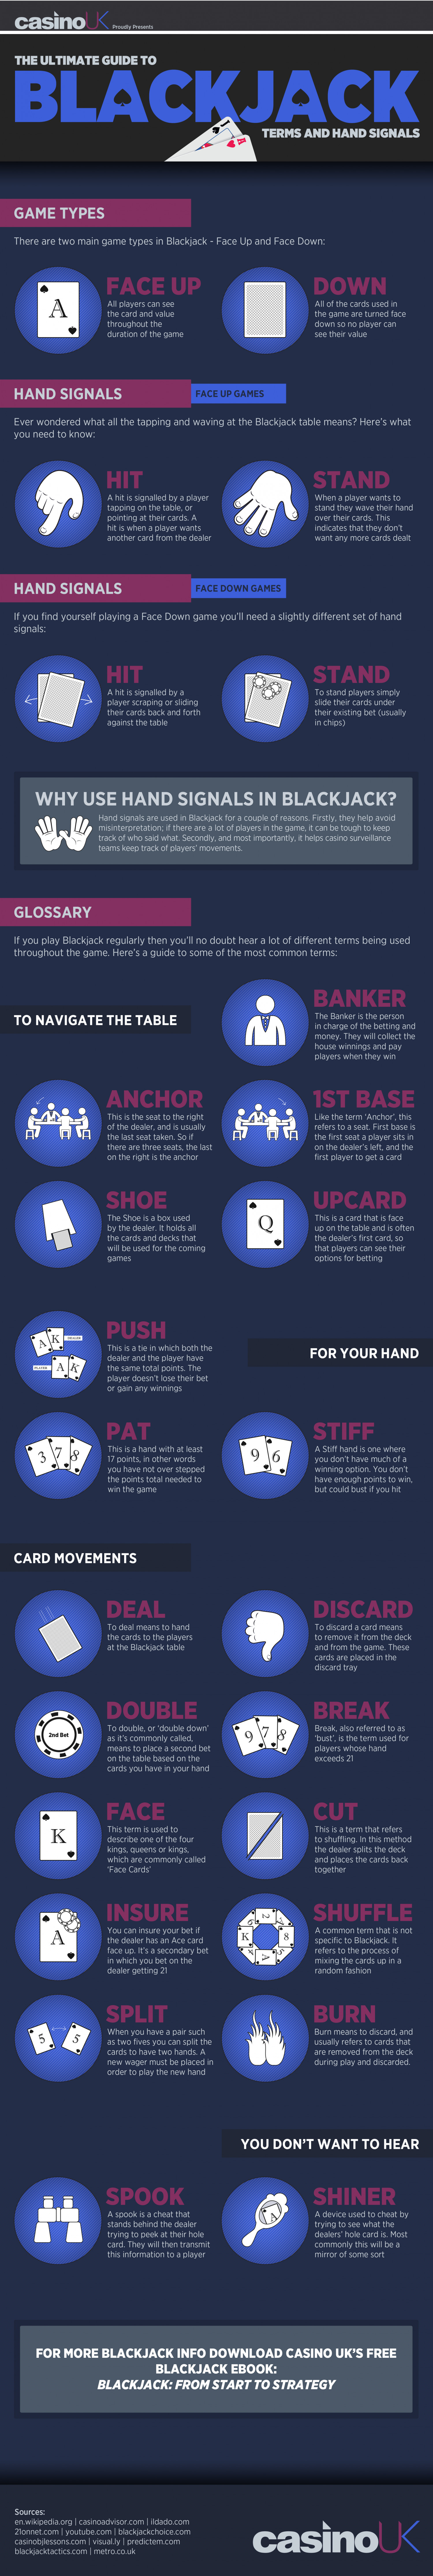 Blackjack Terminology & Hand Signals Infographic